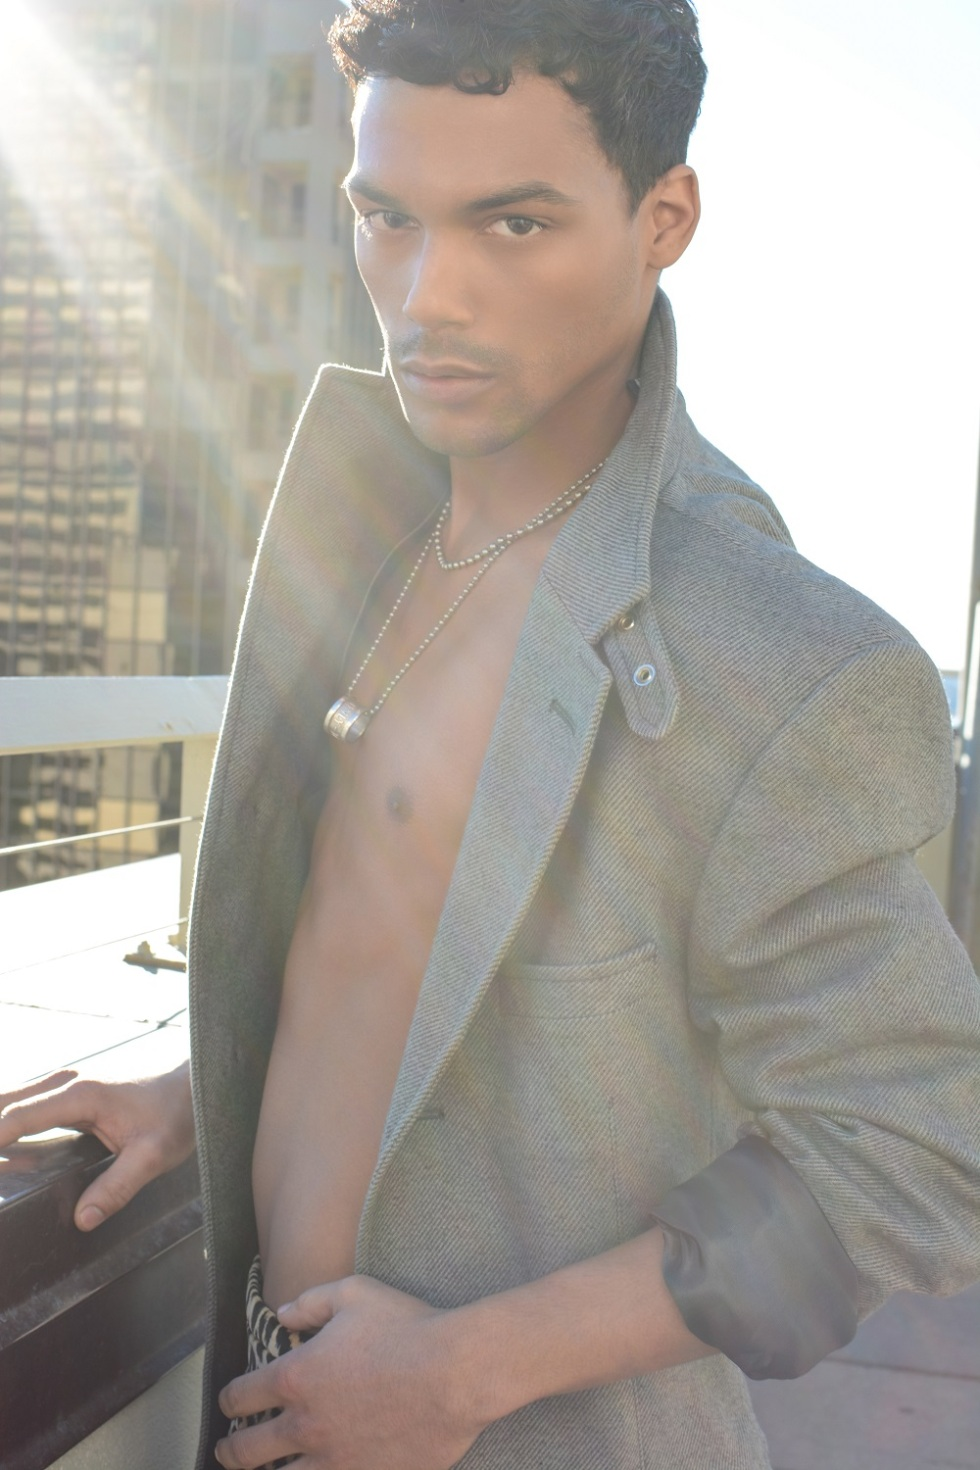 Meet Ryder the new muse from Dallas Texas based Photographer Calvin Brockington, stunning face and body